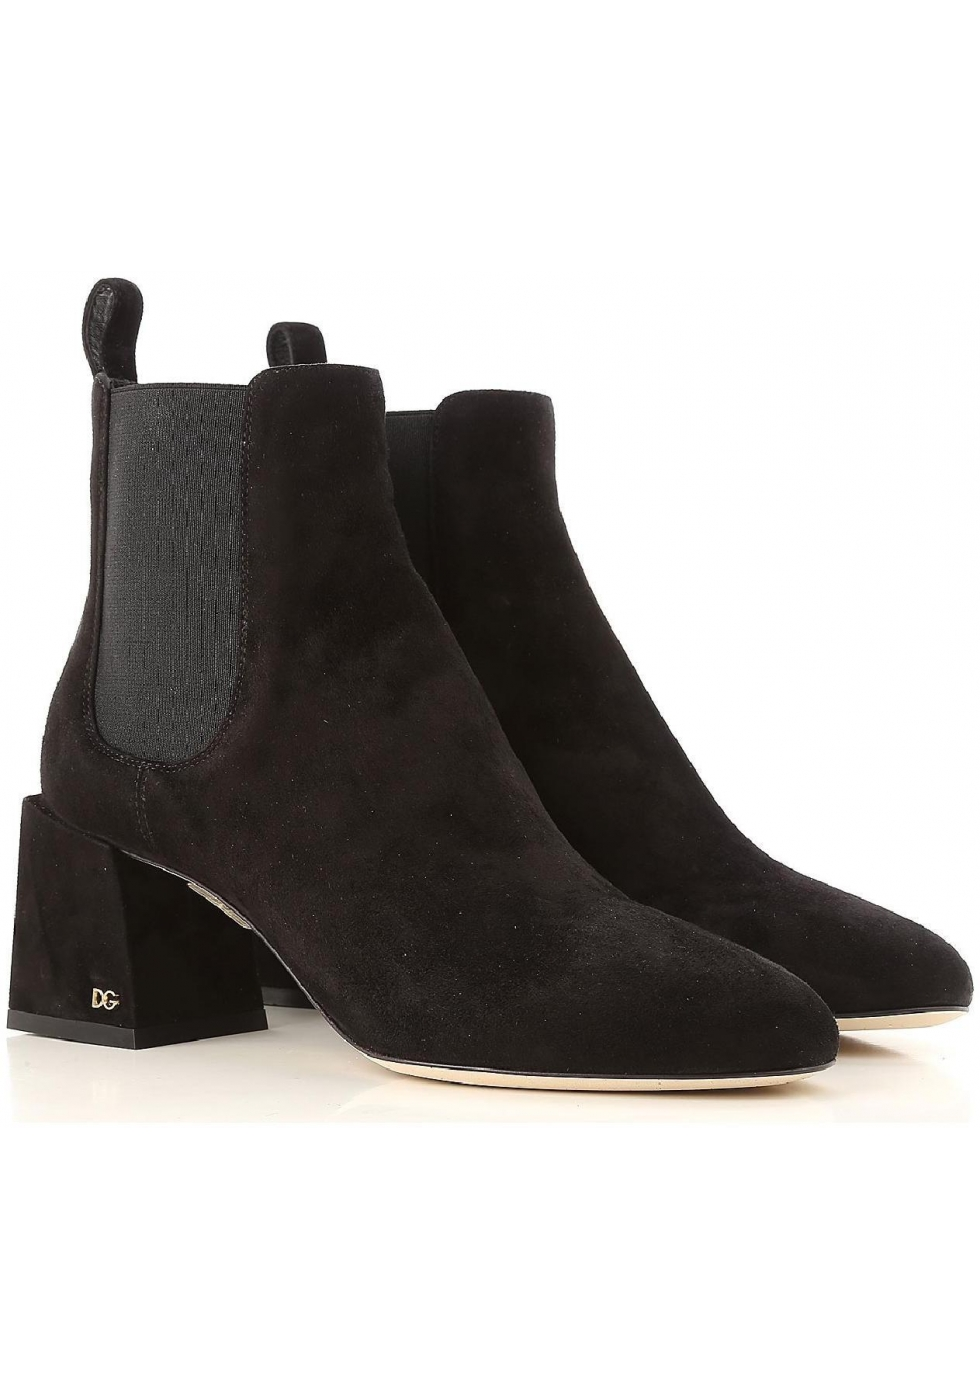 Dolce Amp Gabbana Women S Ankle Boots In Dark Brown Suede With Large Heel Italian Boutique